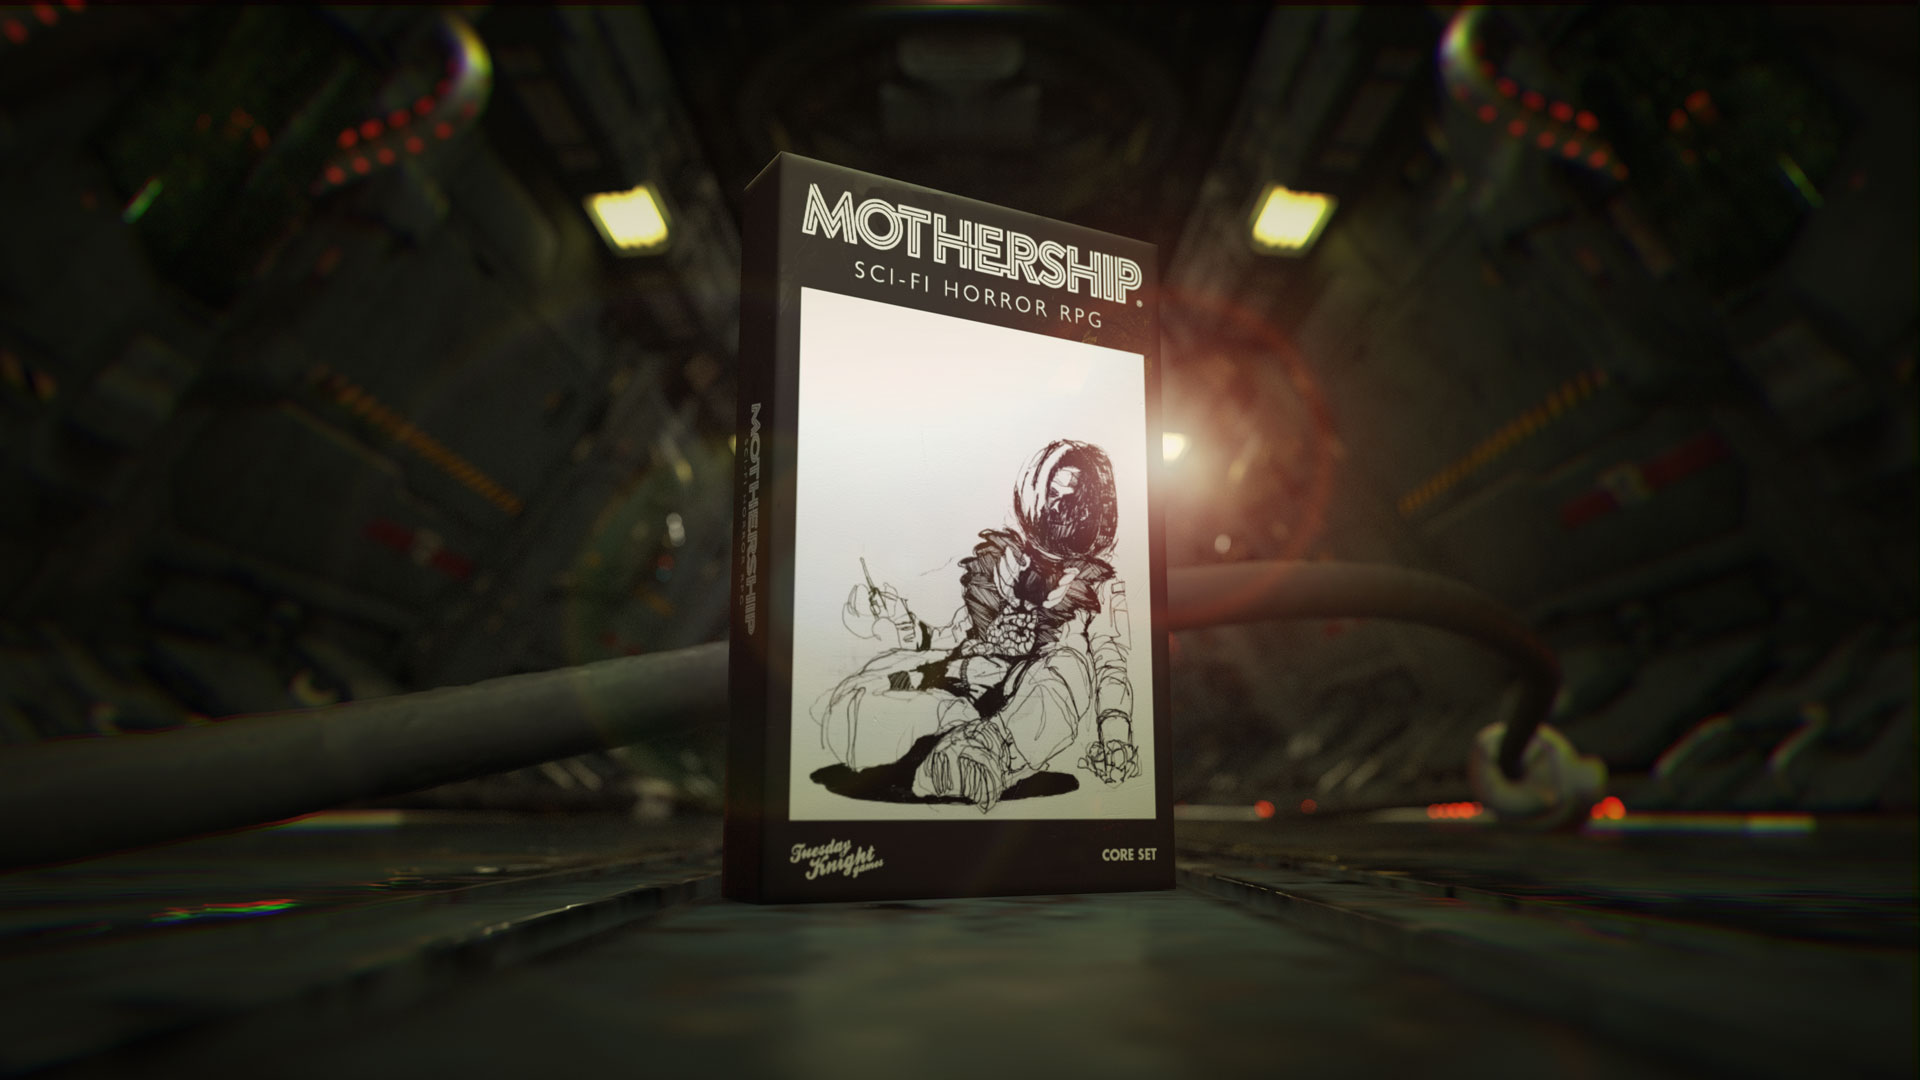 A black and white image of a dead astronaut, his chest exploded, adorns the black and white box of Mothership.